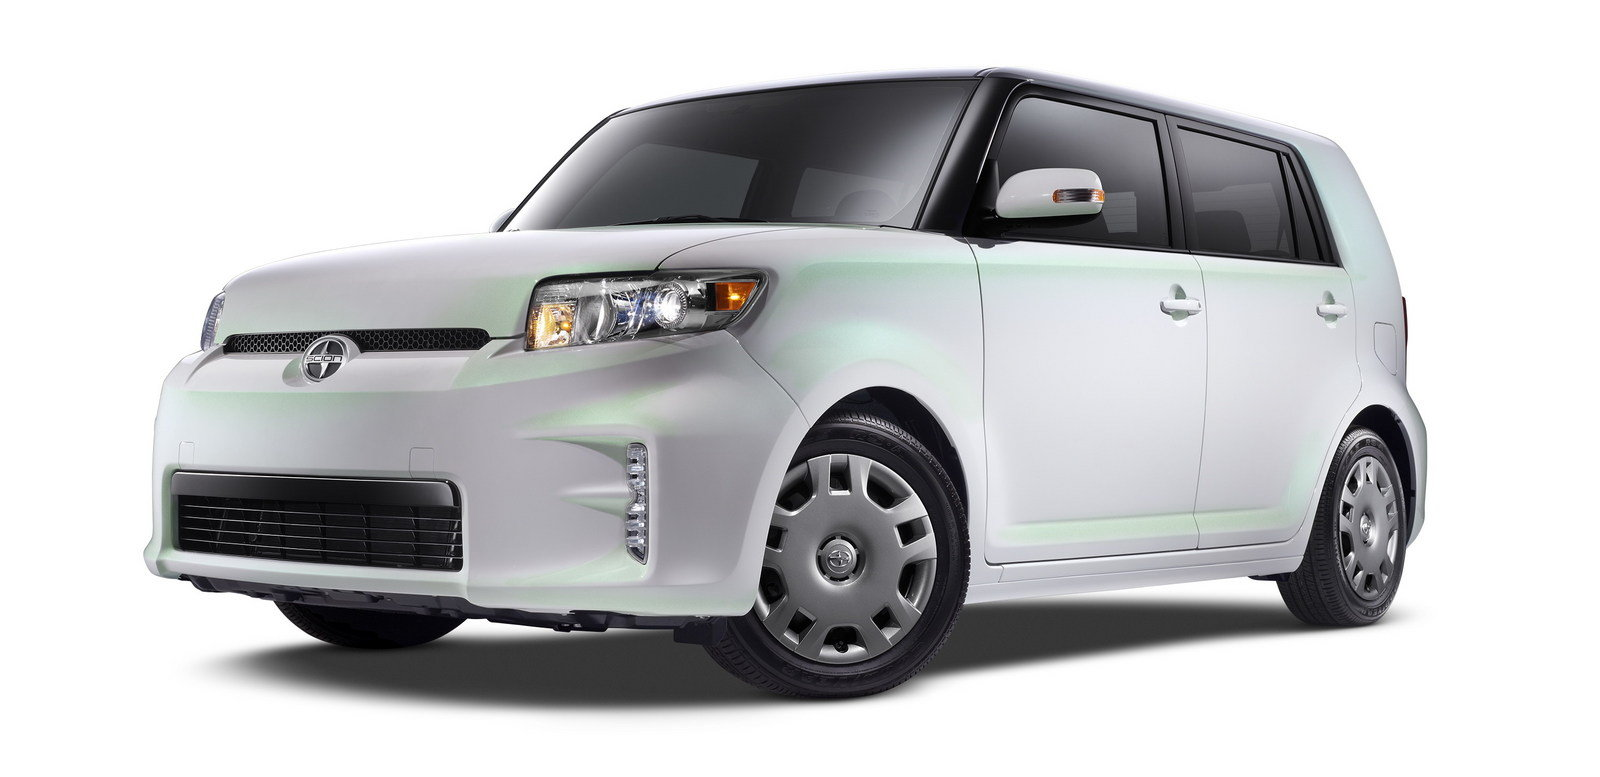 2014 scion xb release series 10 review top speed. Black Bedroom Furniture Sets. Home Design Ideas